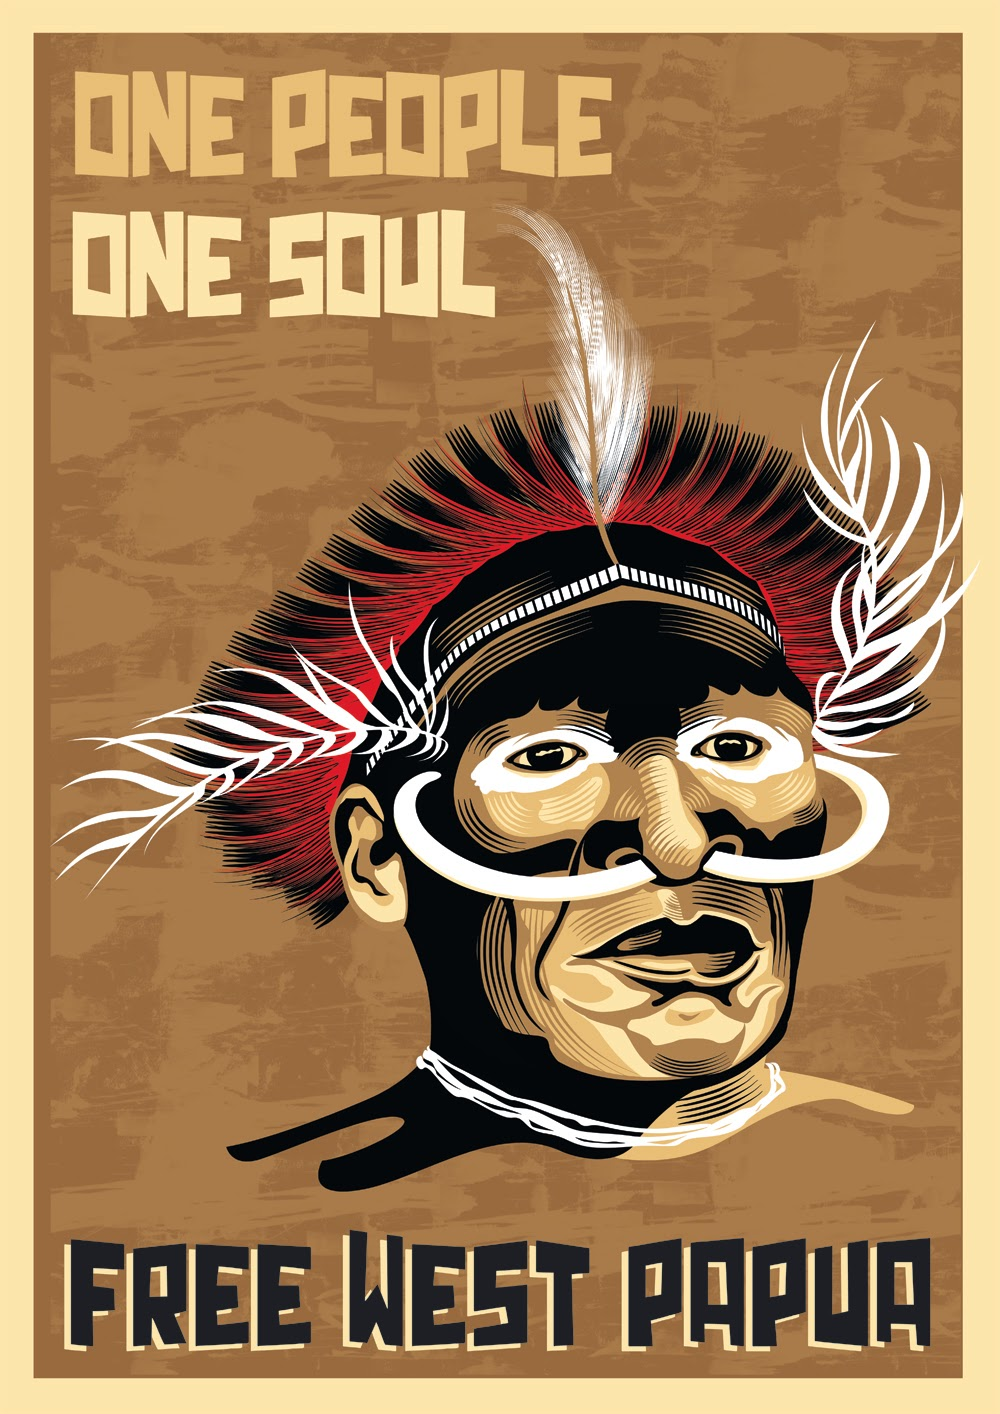 Design poster k3 - Ona Filloy One People One Soul Portrait Of A Dani Tribesman From The West Papua Highlands Printed On Hahnemuhle Photo Rag Using Epson Ultrachrome K3 Inks